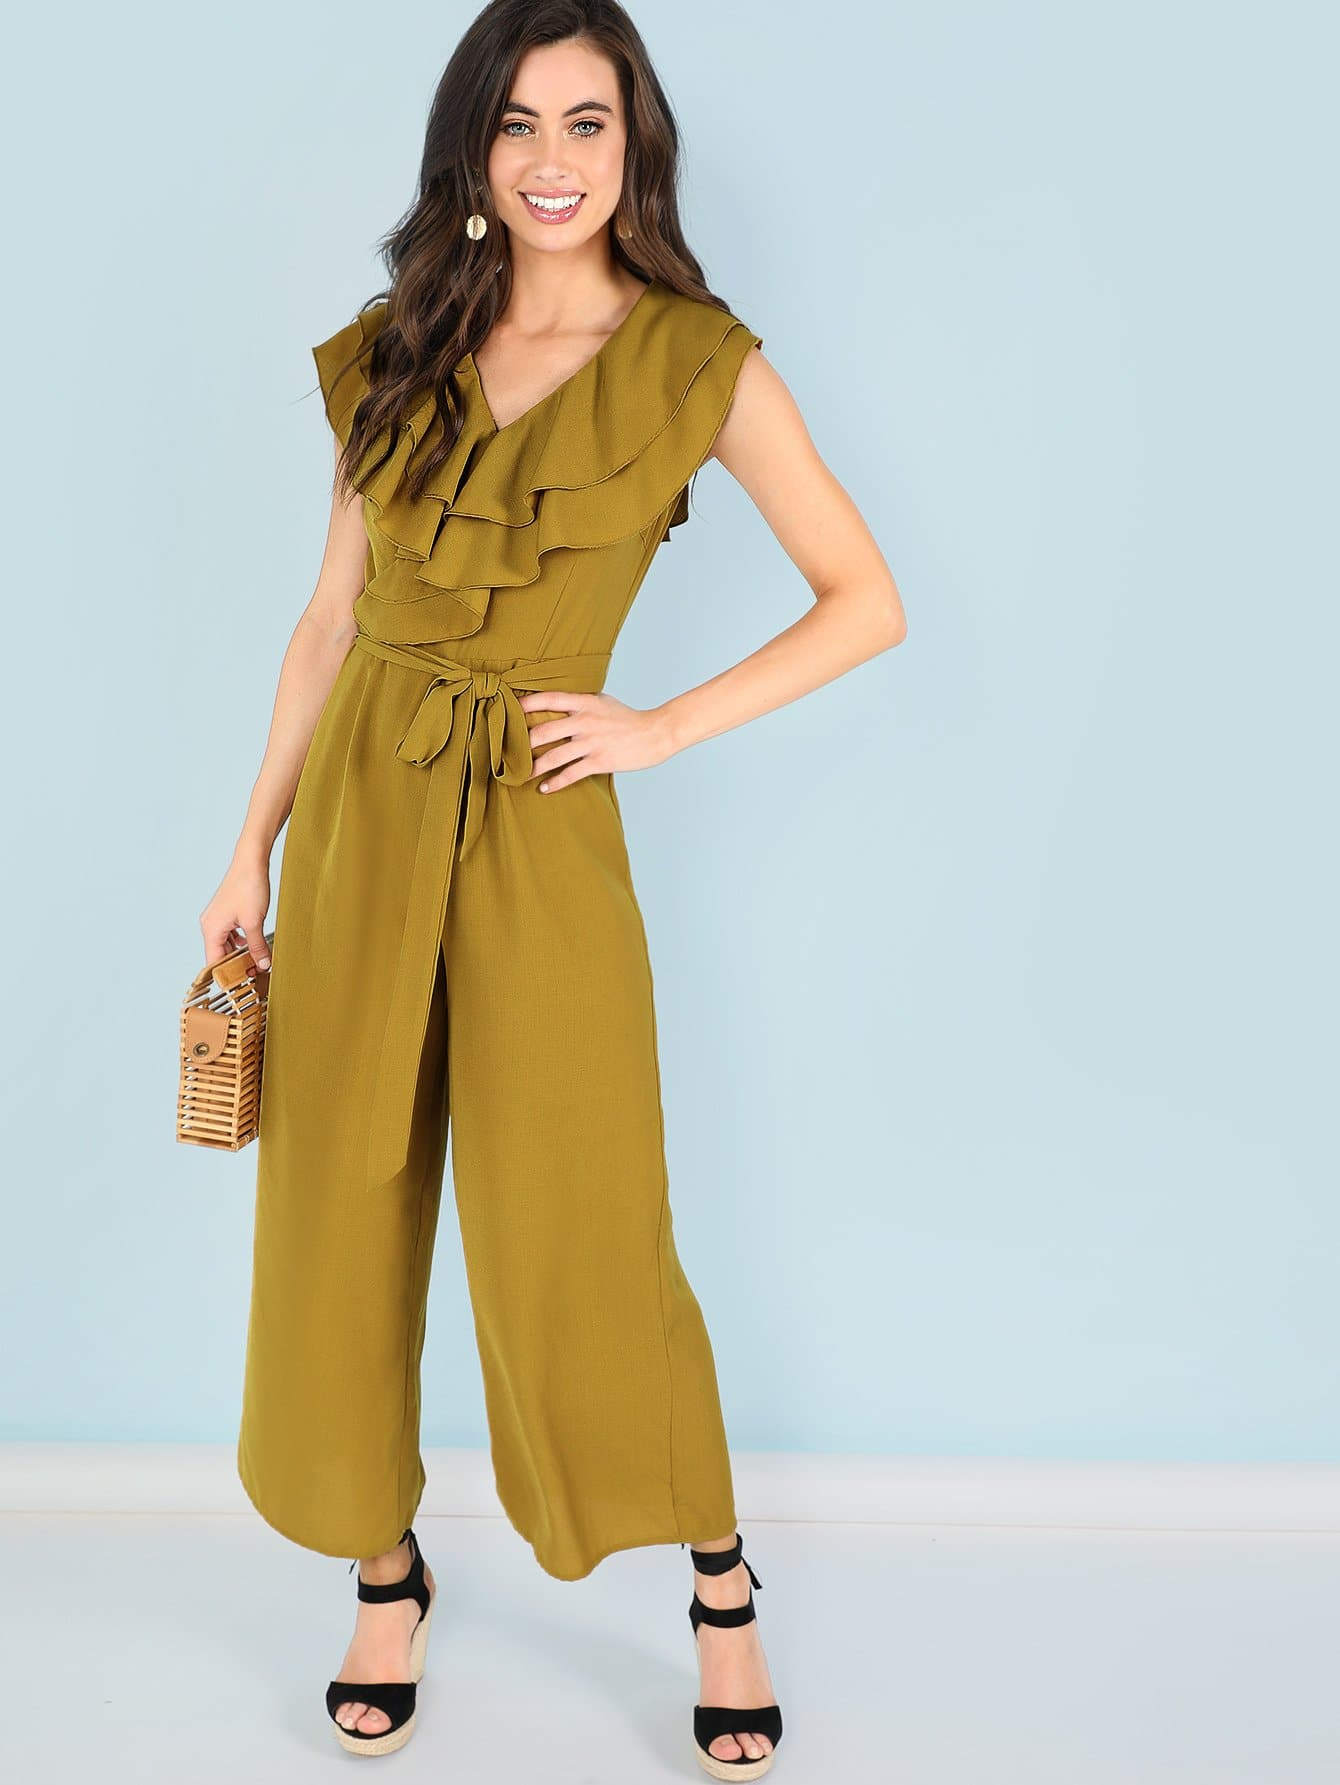 Tiered Layer Ruffle Belted Jumpsuits laq mirror metallics лак для ногтей тон 10180 15 мл